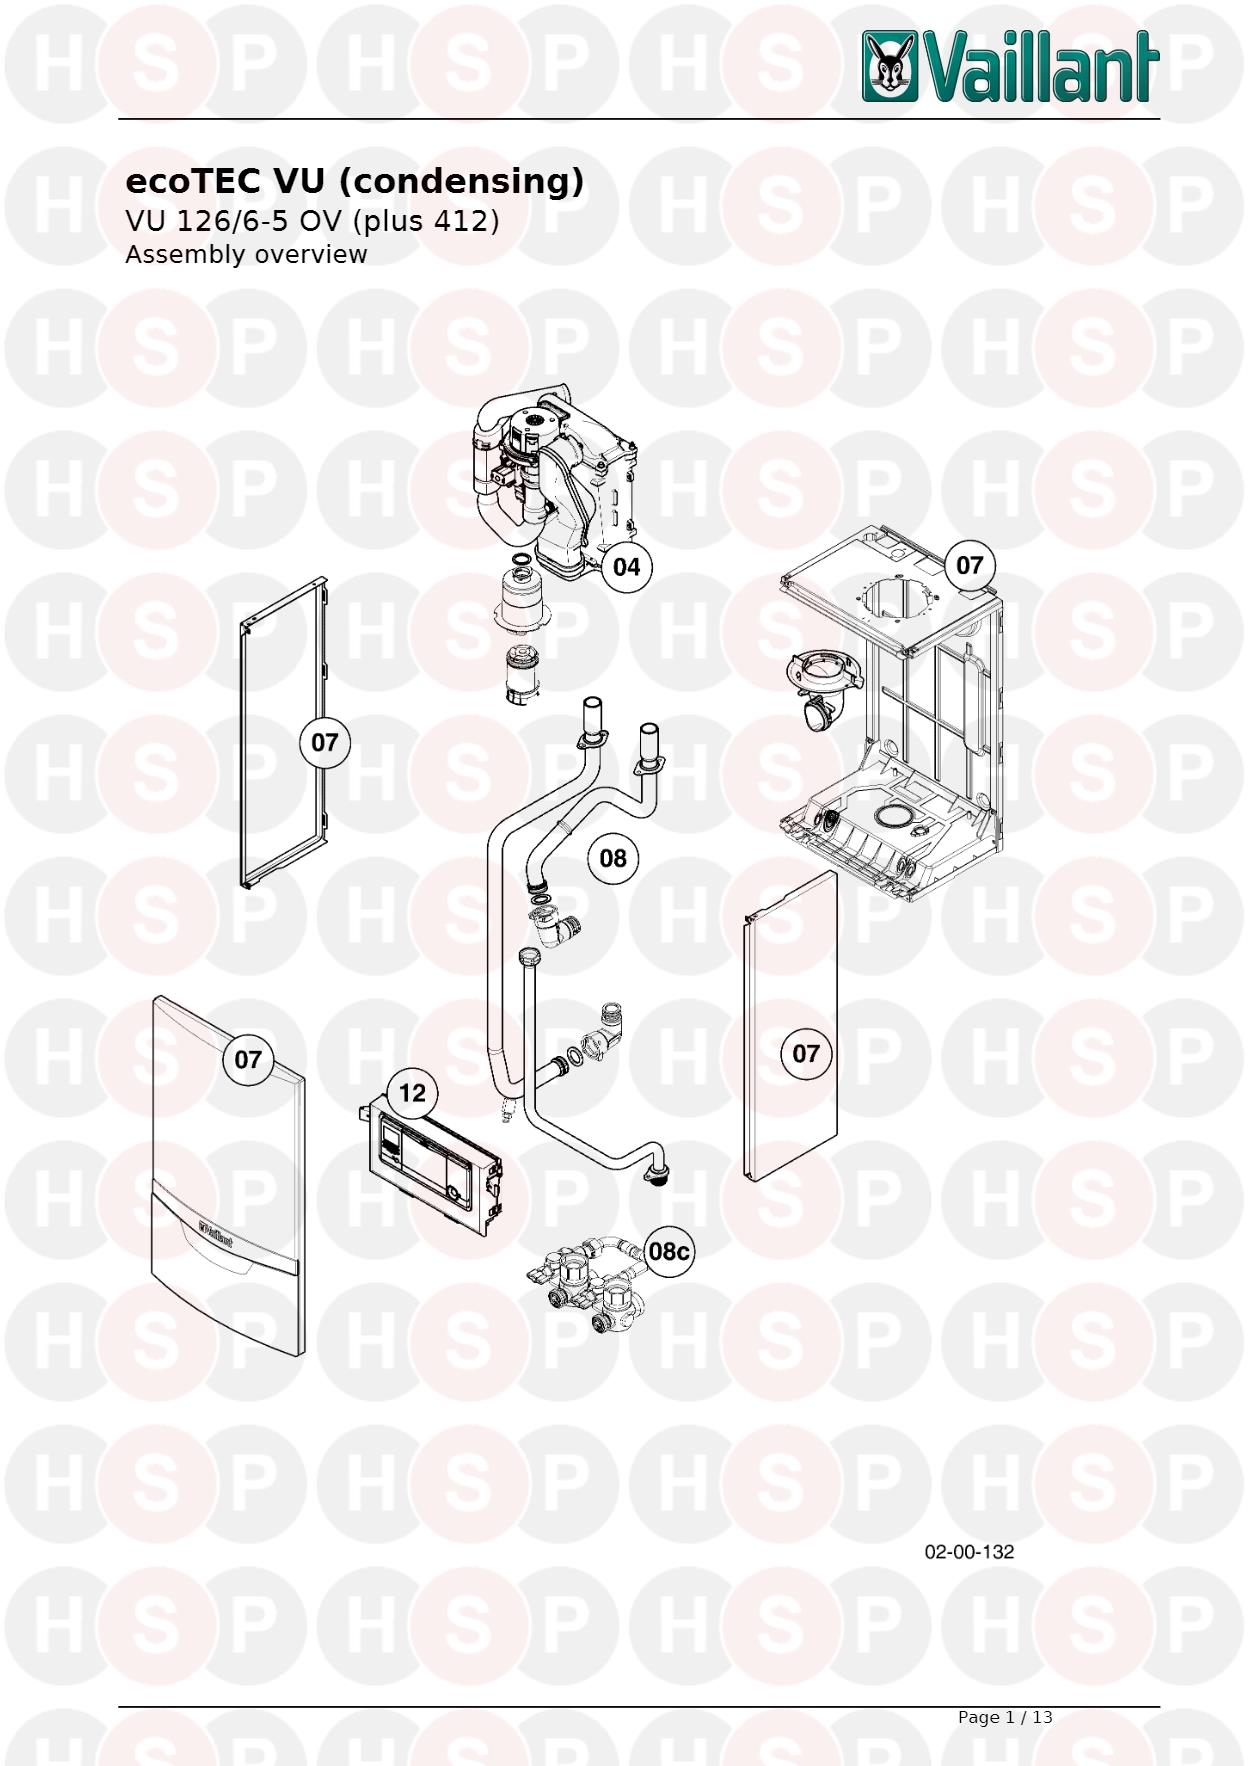 Vaillant ecotec plus 412 vu 1266 5 ov 2015 2016 overview diagram click the diagram to open it on a new page asfbconference2016 Choice Image